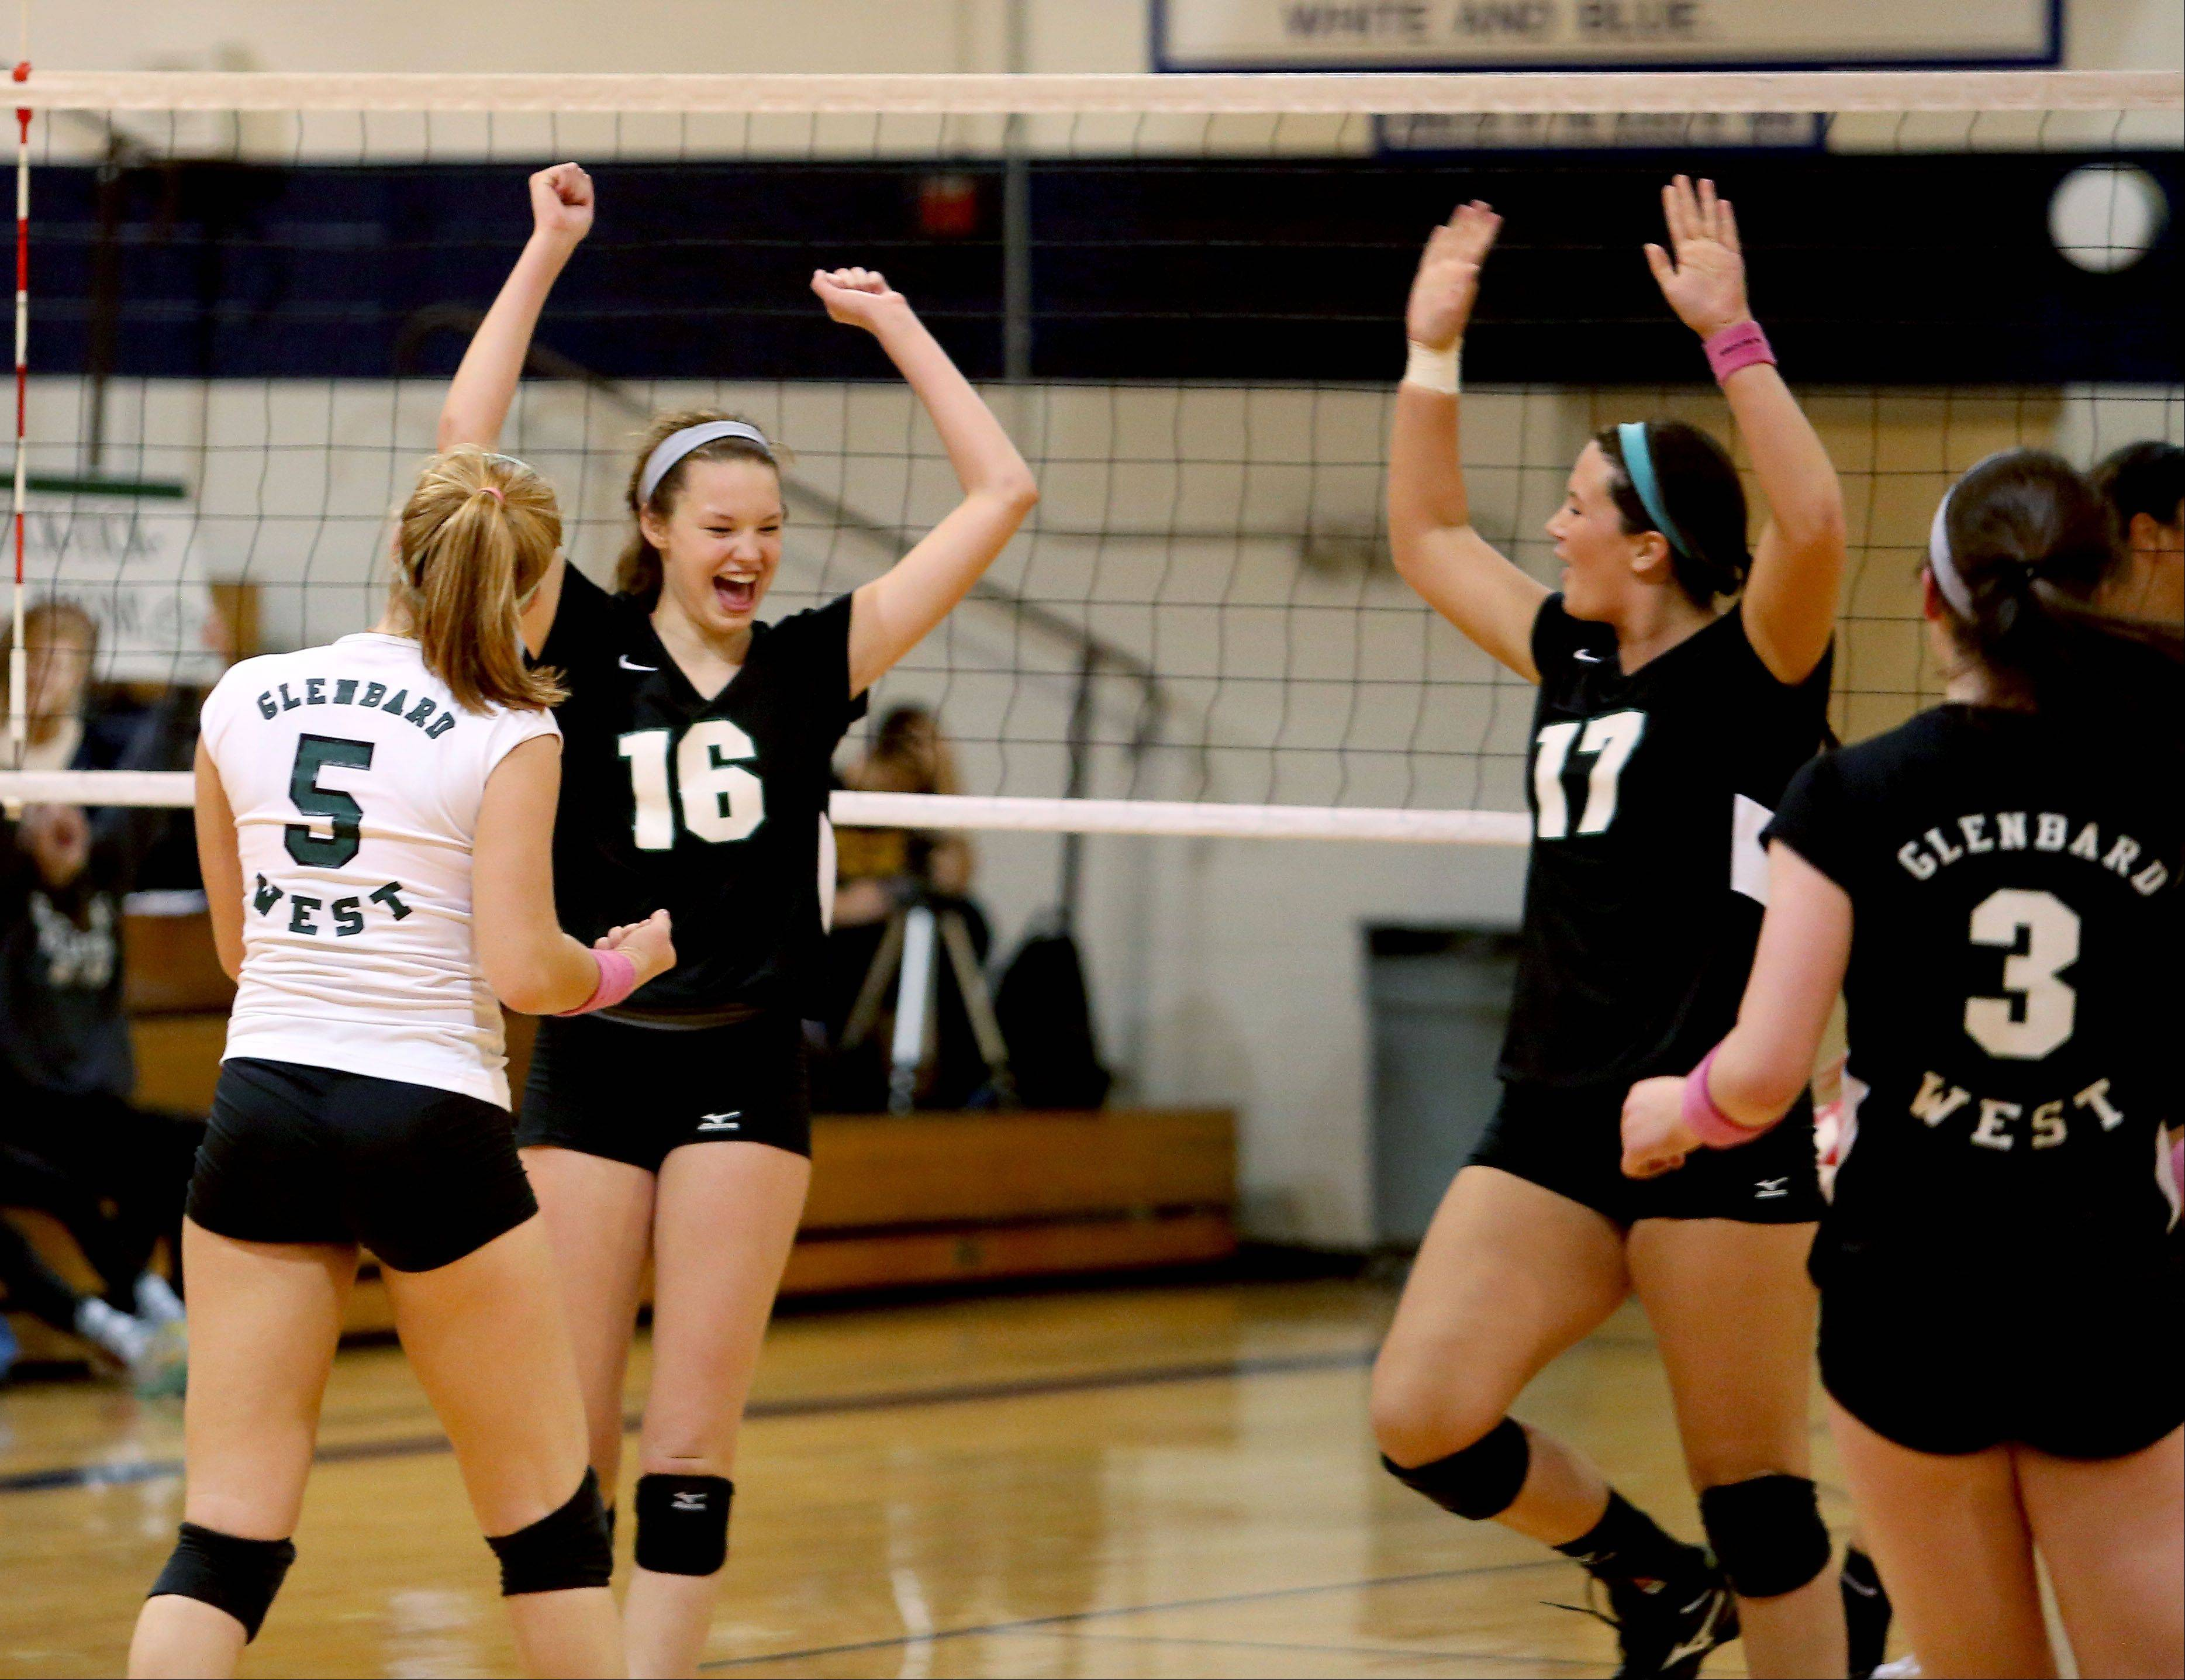 Glenbard West celebrate a point won over Schaumburg during their 2-0 win in the Class 4A regional volleyball final in West Chicago on Thursday.